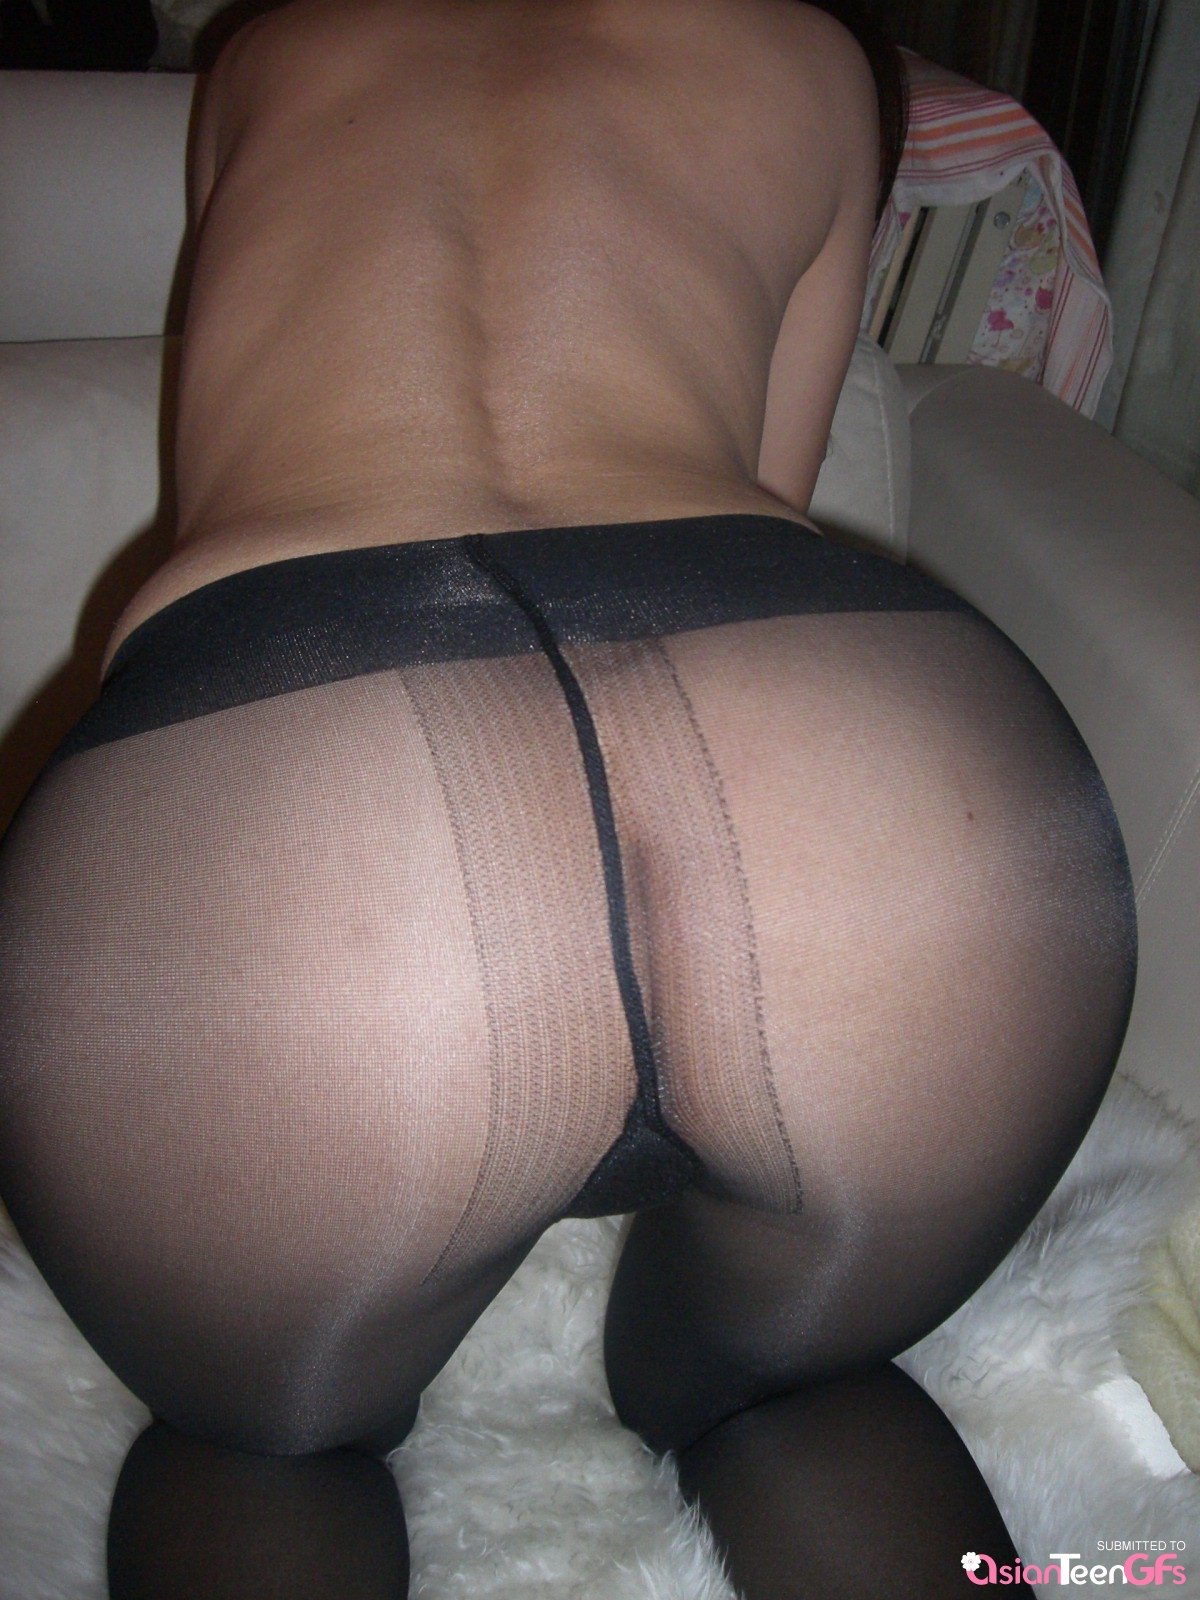 Brilliant In pantyhose show pussy with